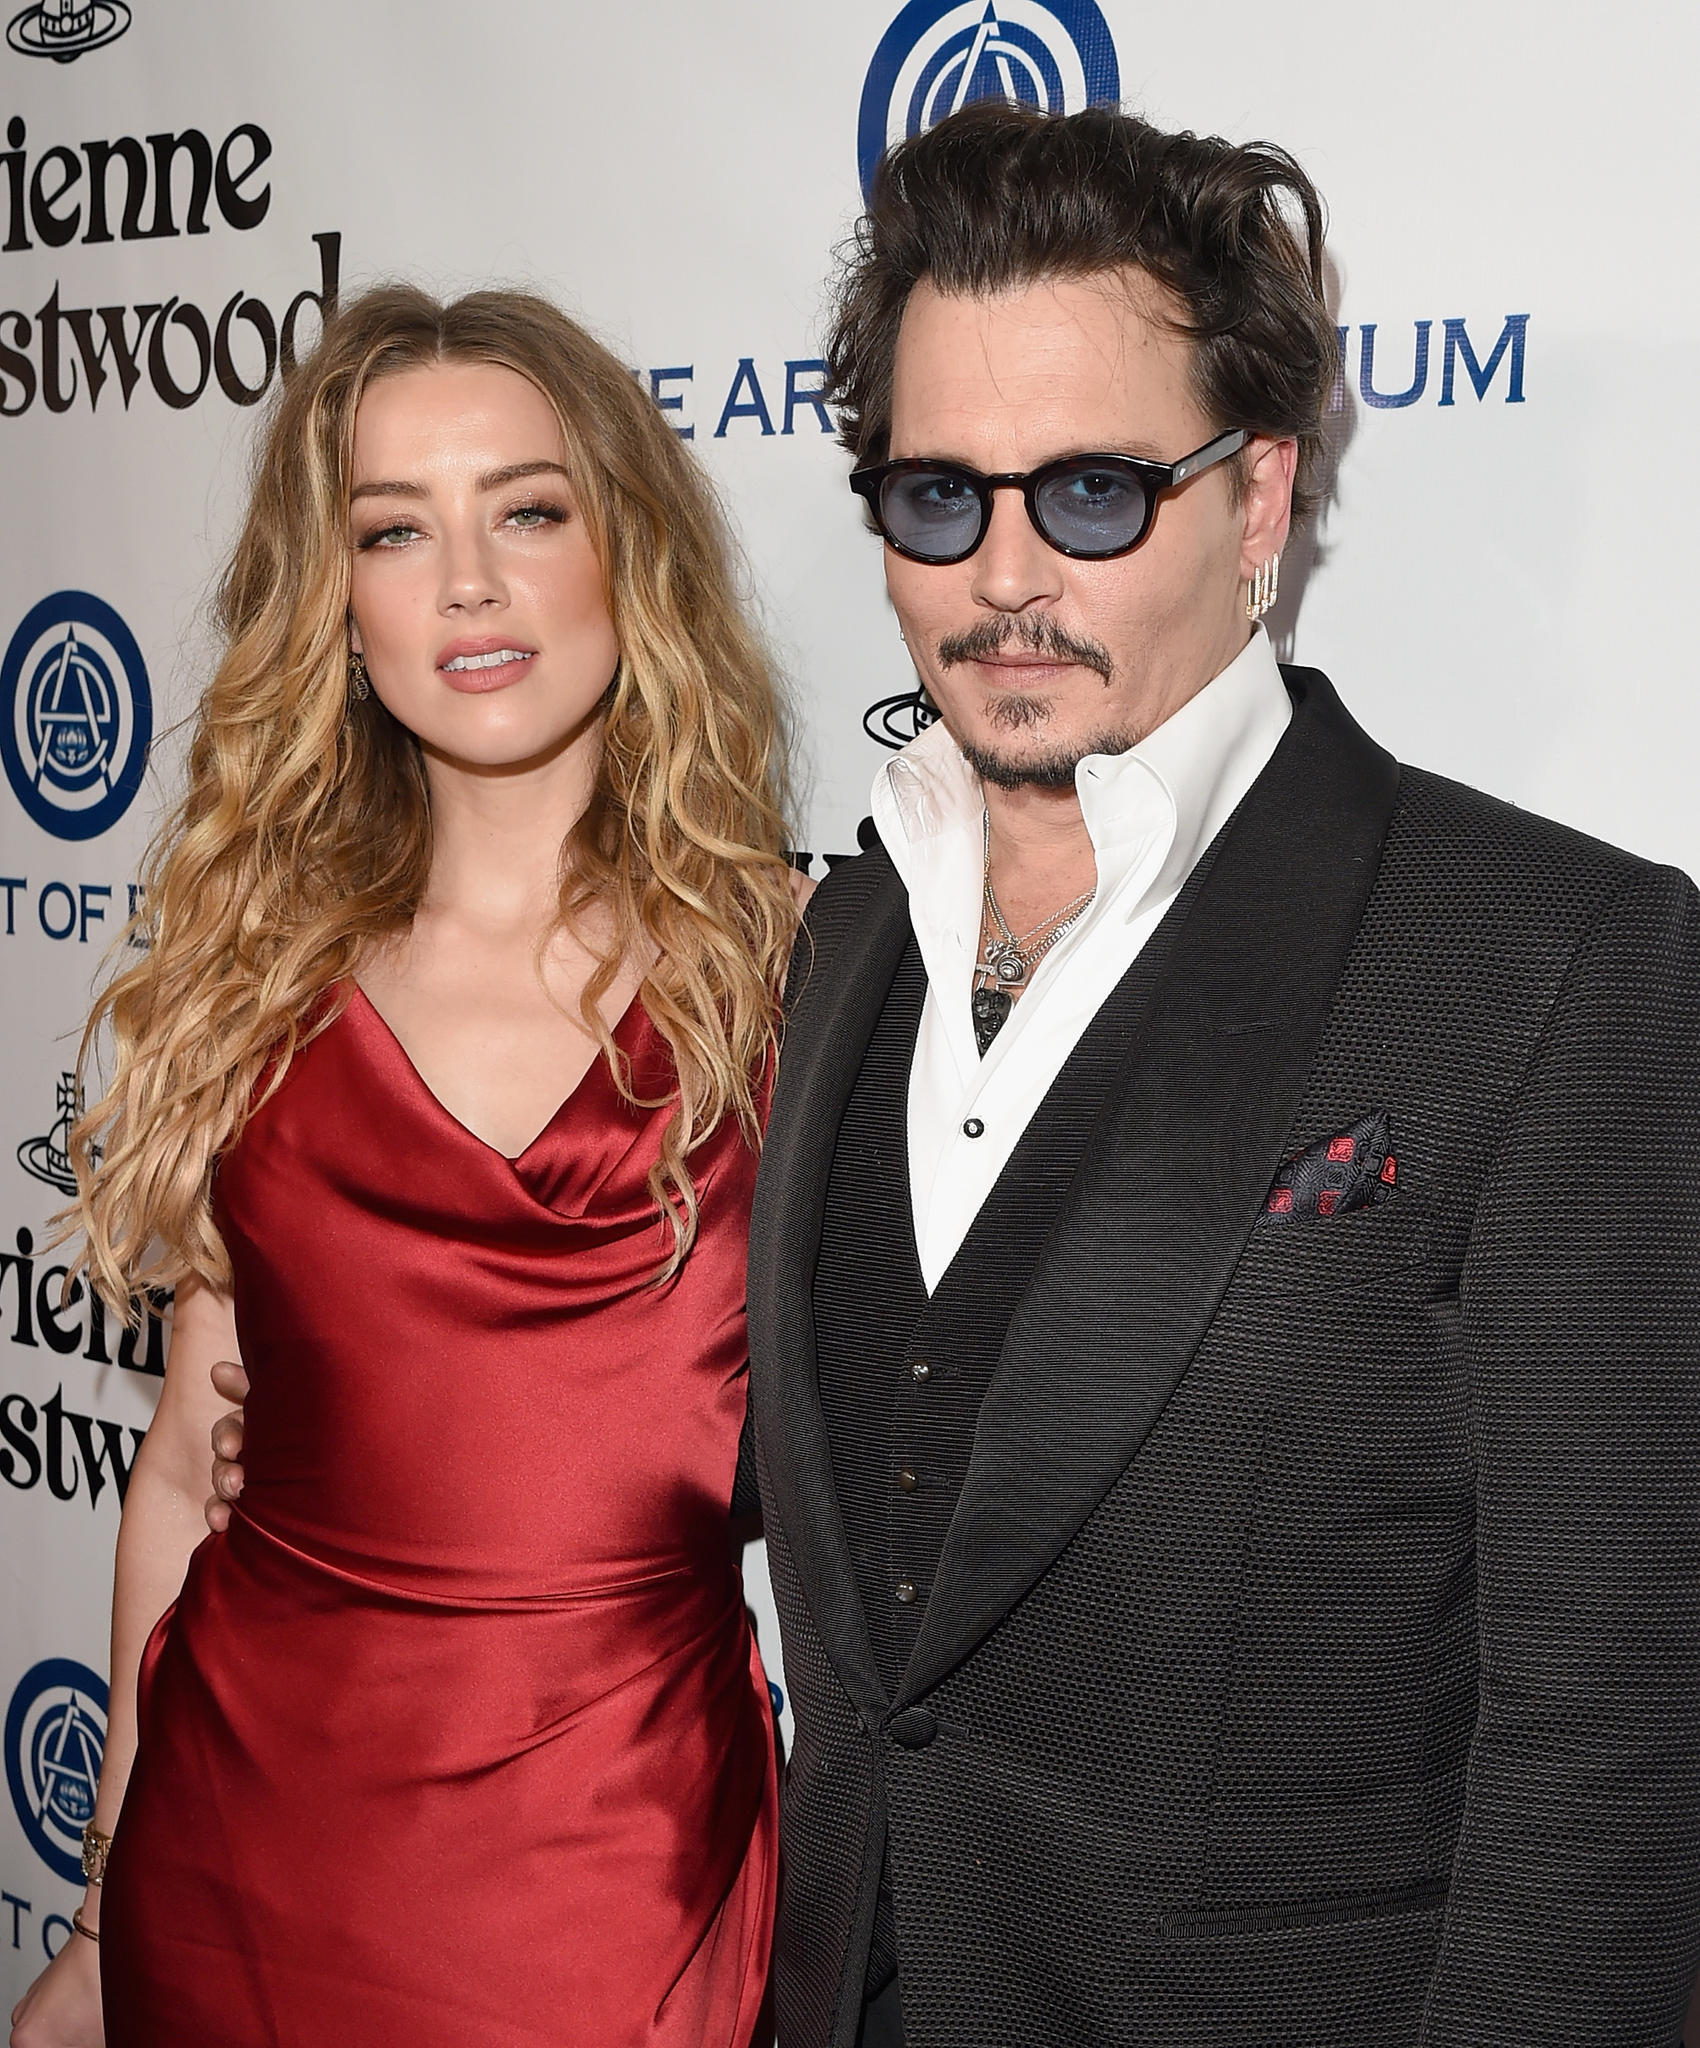 Amber Heard + Johnny Depp